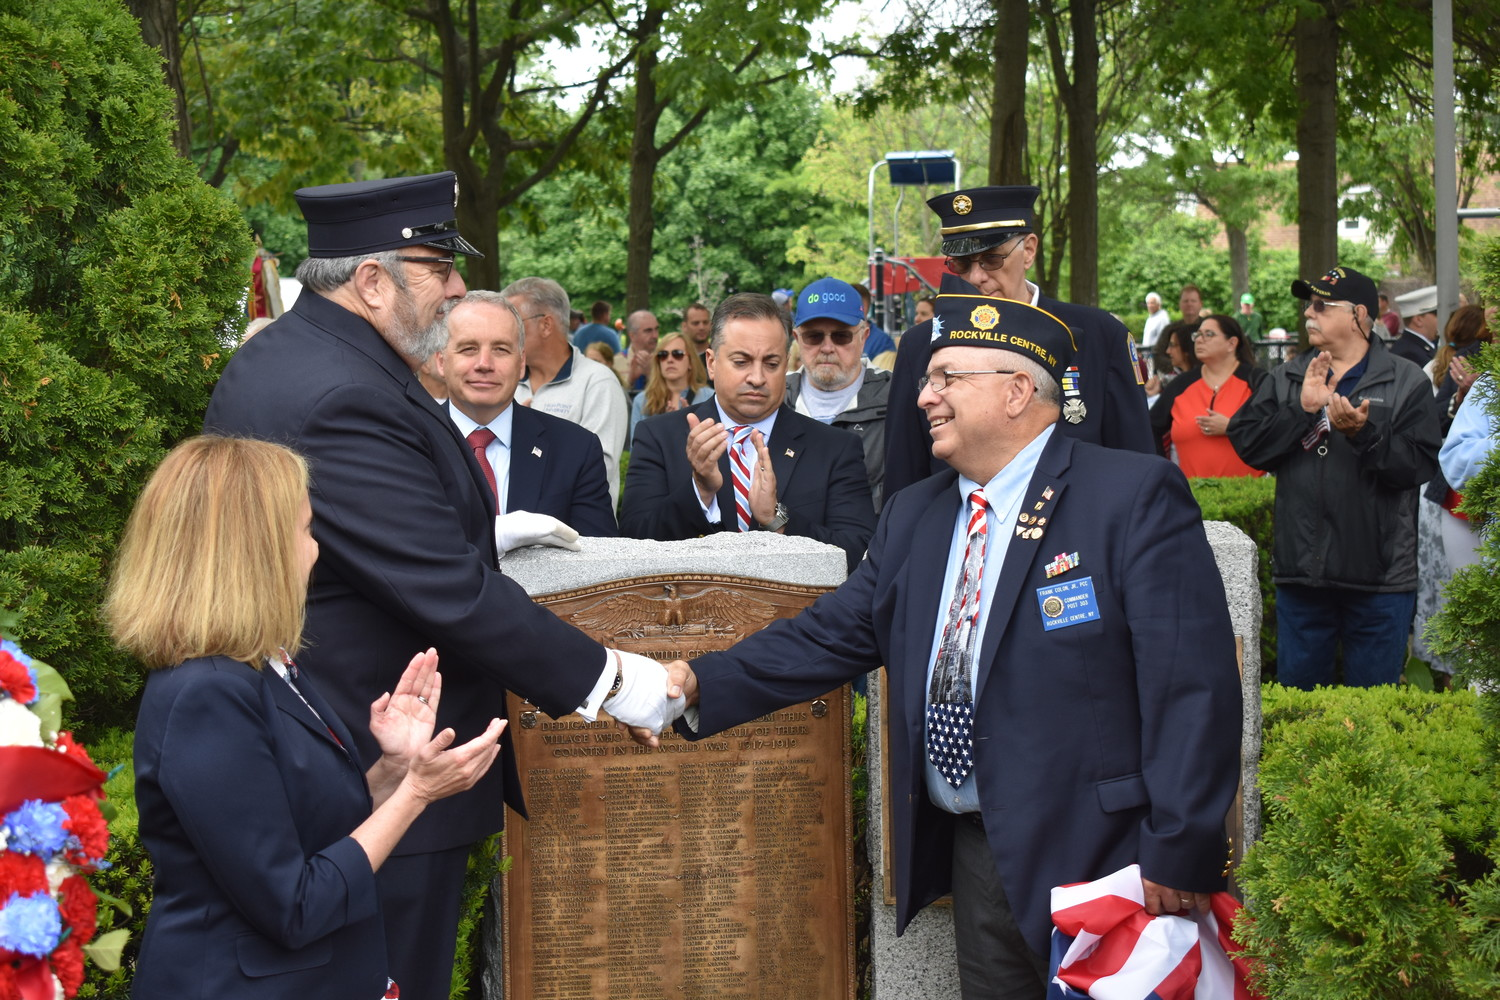 Mayor Francis X. Murray and veteran Frank Colon Jr., commander of American Legion Post 303, unveiled a new monument with the names of Rockville Centre residents who served in World War I. Hempstead Town Supervisor Laura Gillen, and village board trustees Emilio Grillo, Michael Sepe and Ed Oppenheimer looked on.